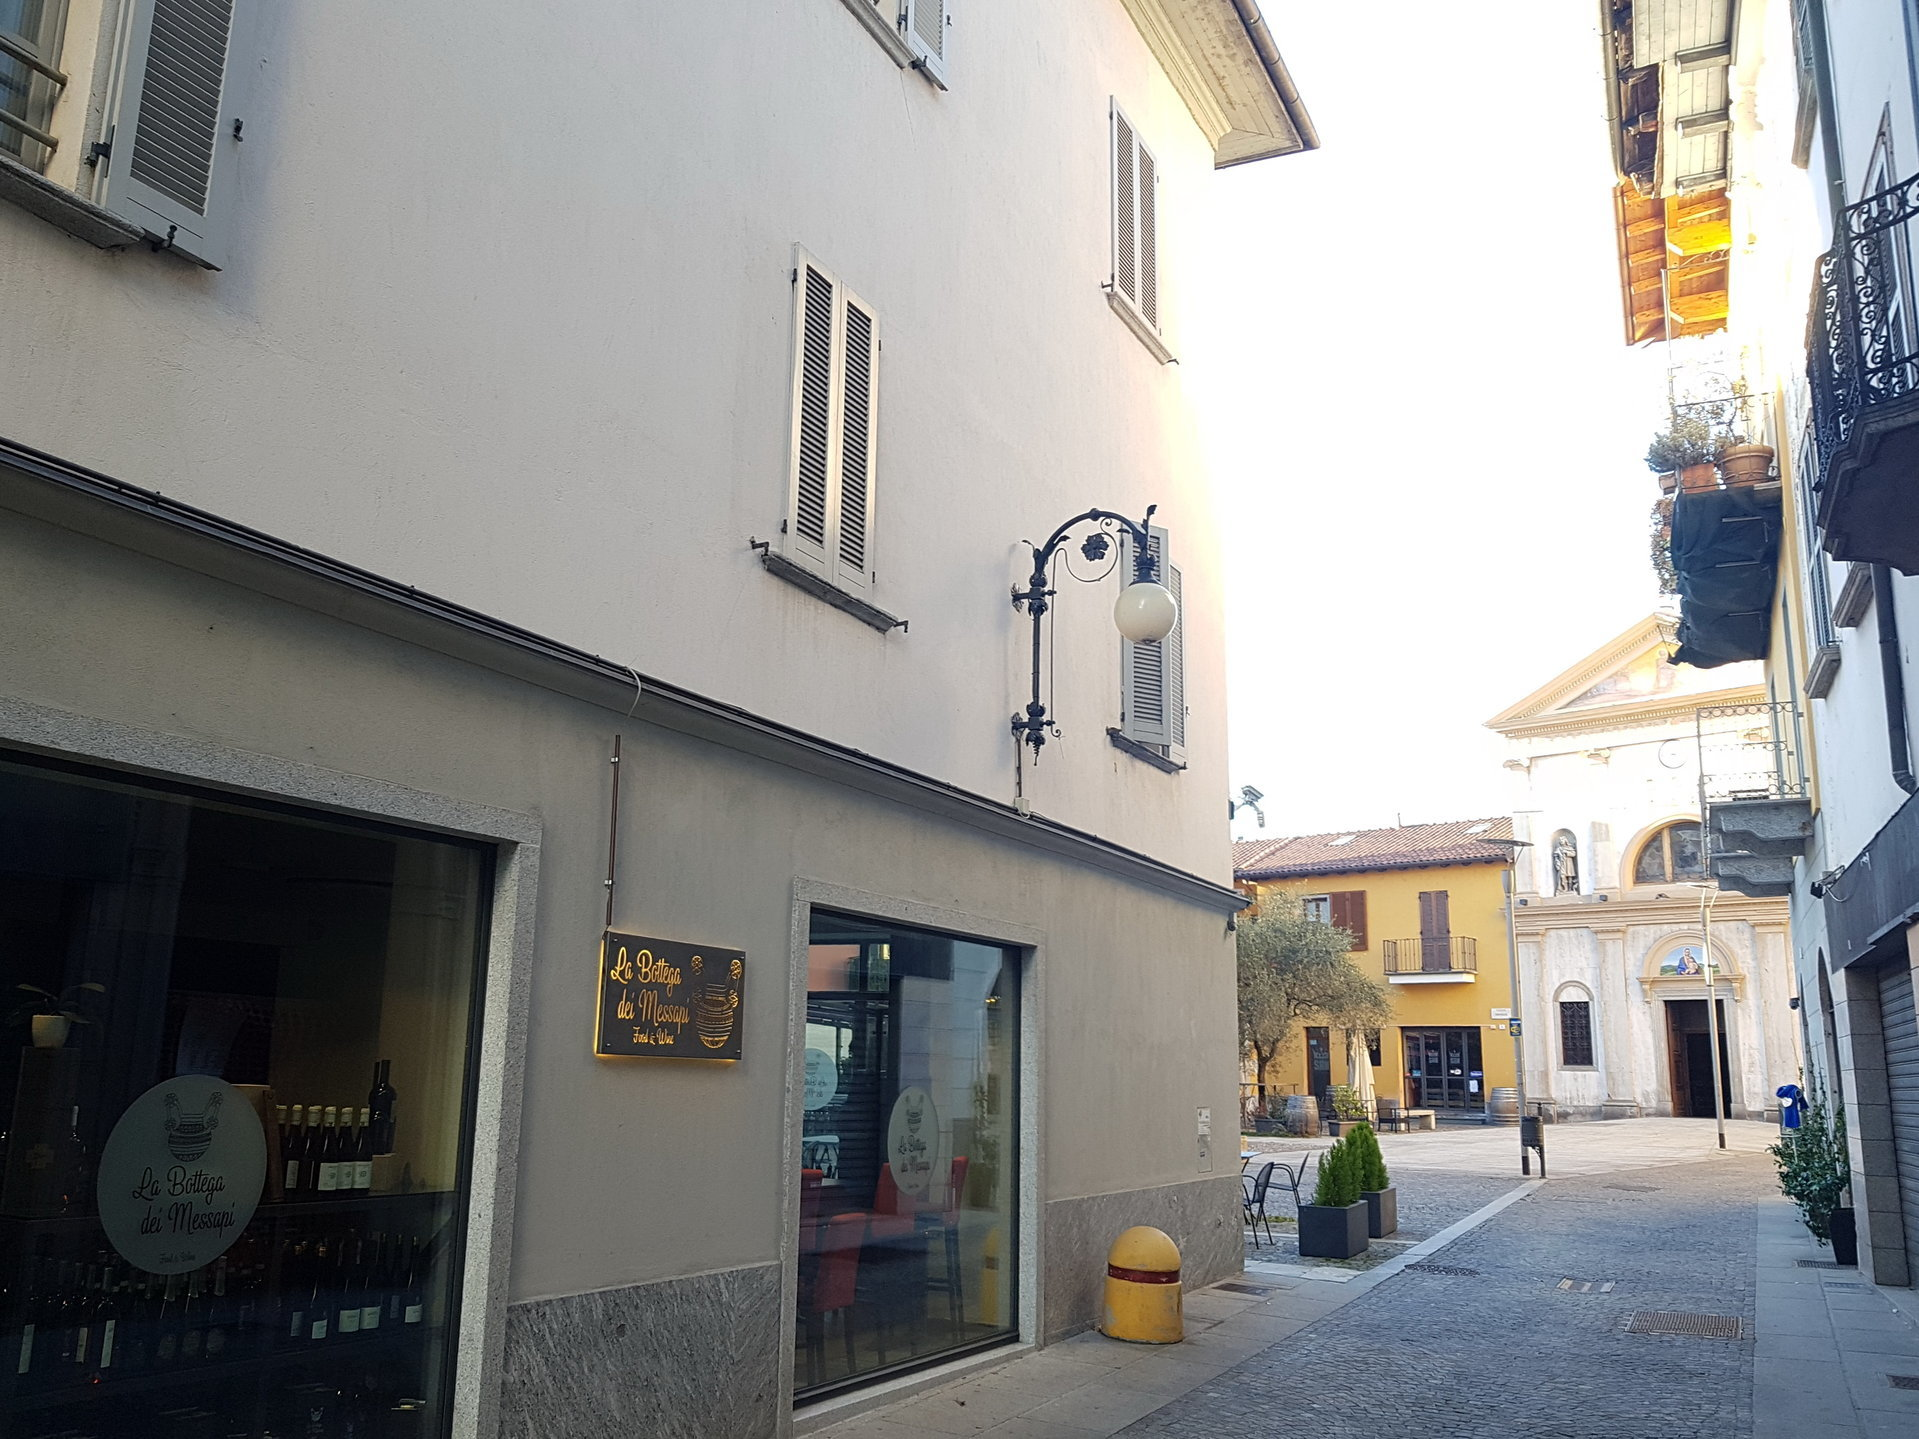 Sale renovated apartment in Verbania - street view